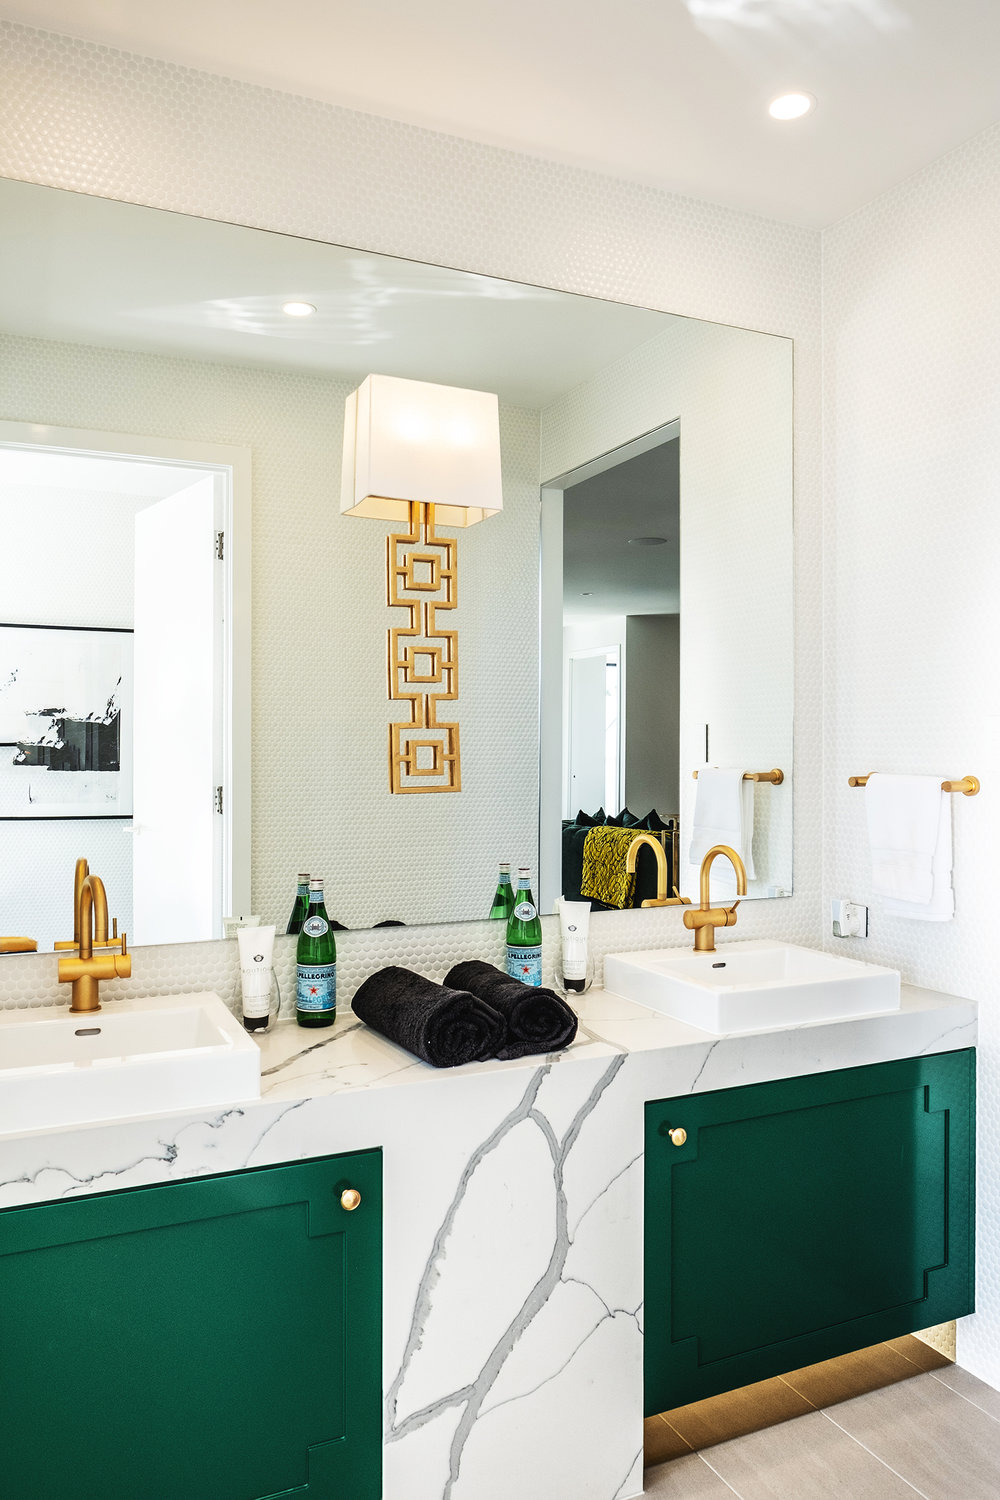 aston_milan_palm_springs_style_bathroom_kelly_green_gold_glamour_luxury_luxe.jpg